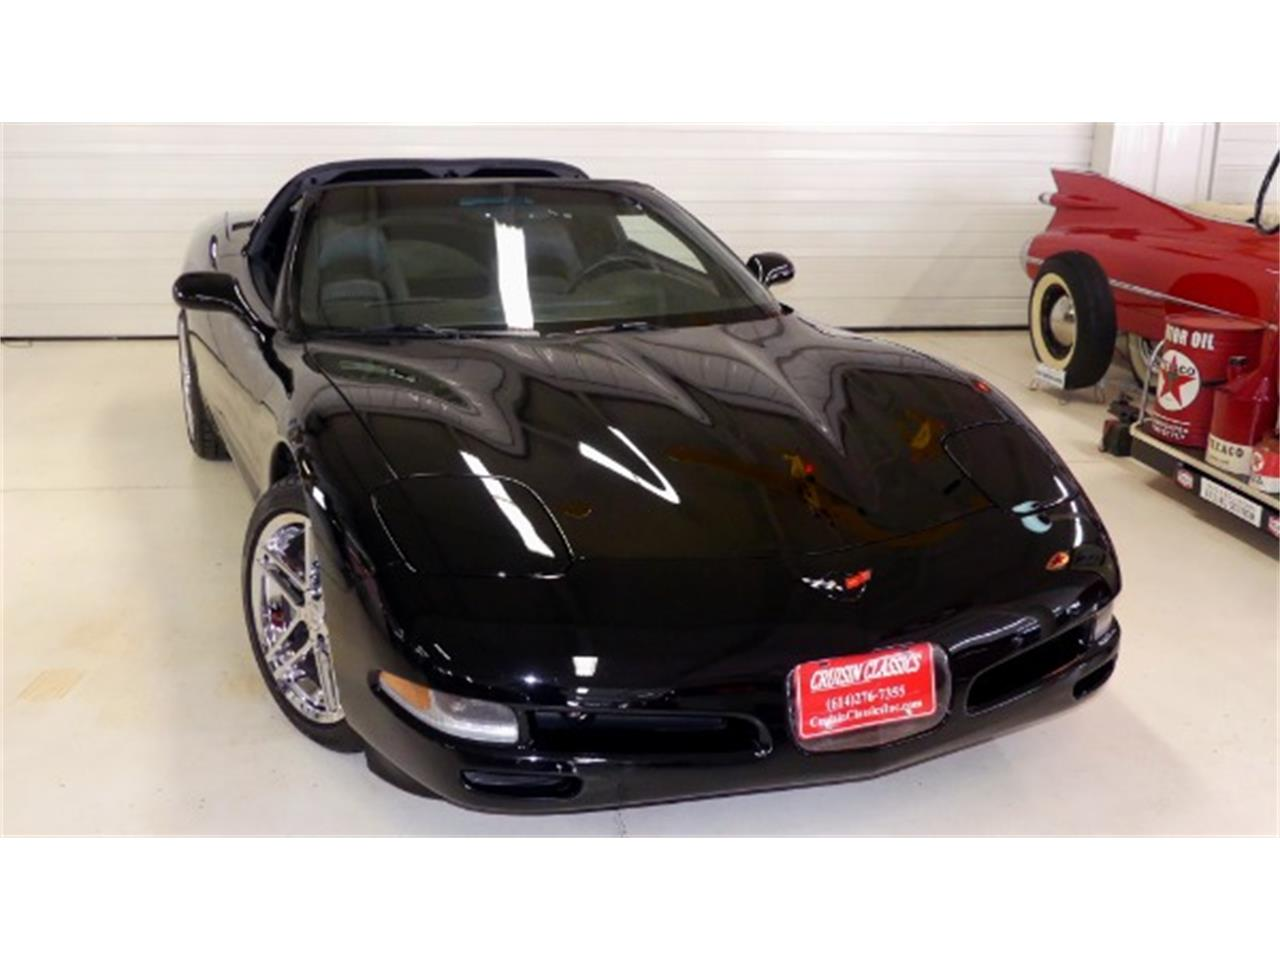 Large Picture of 1998 Chevrolet Corvette located in Ohio - $18,995.00 Offered by Cruisin Classics - PV85